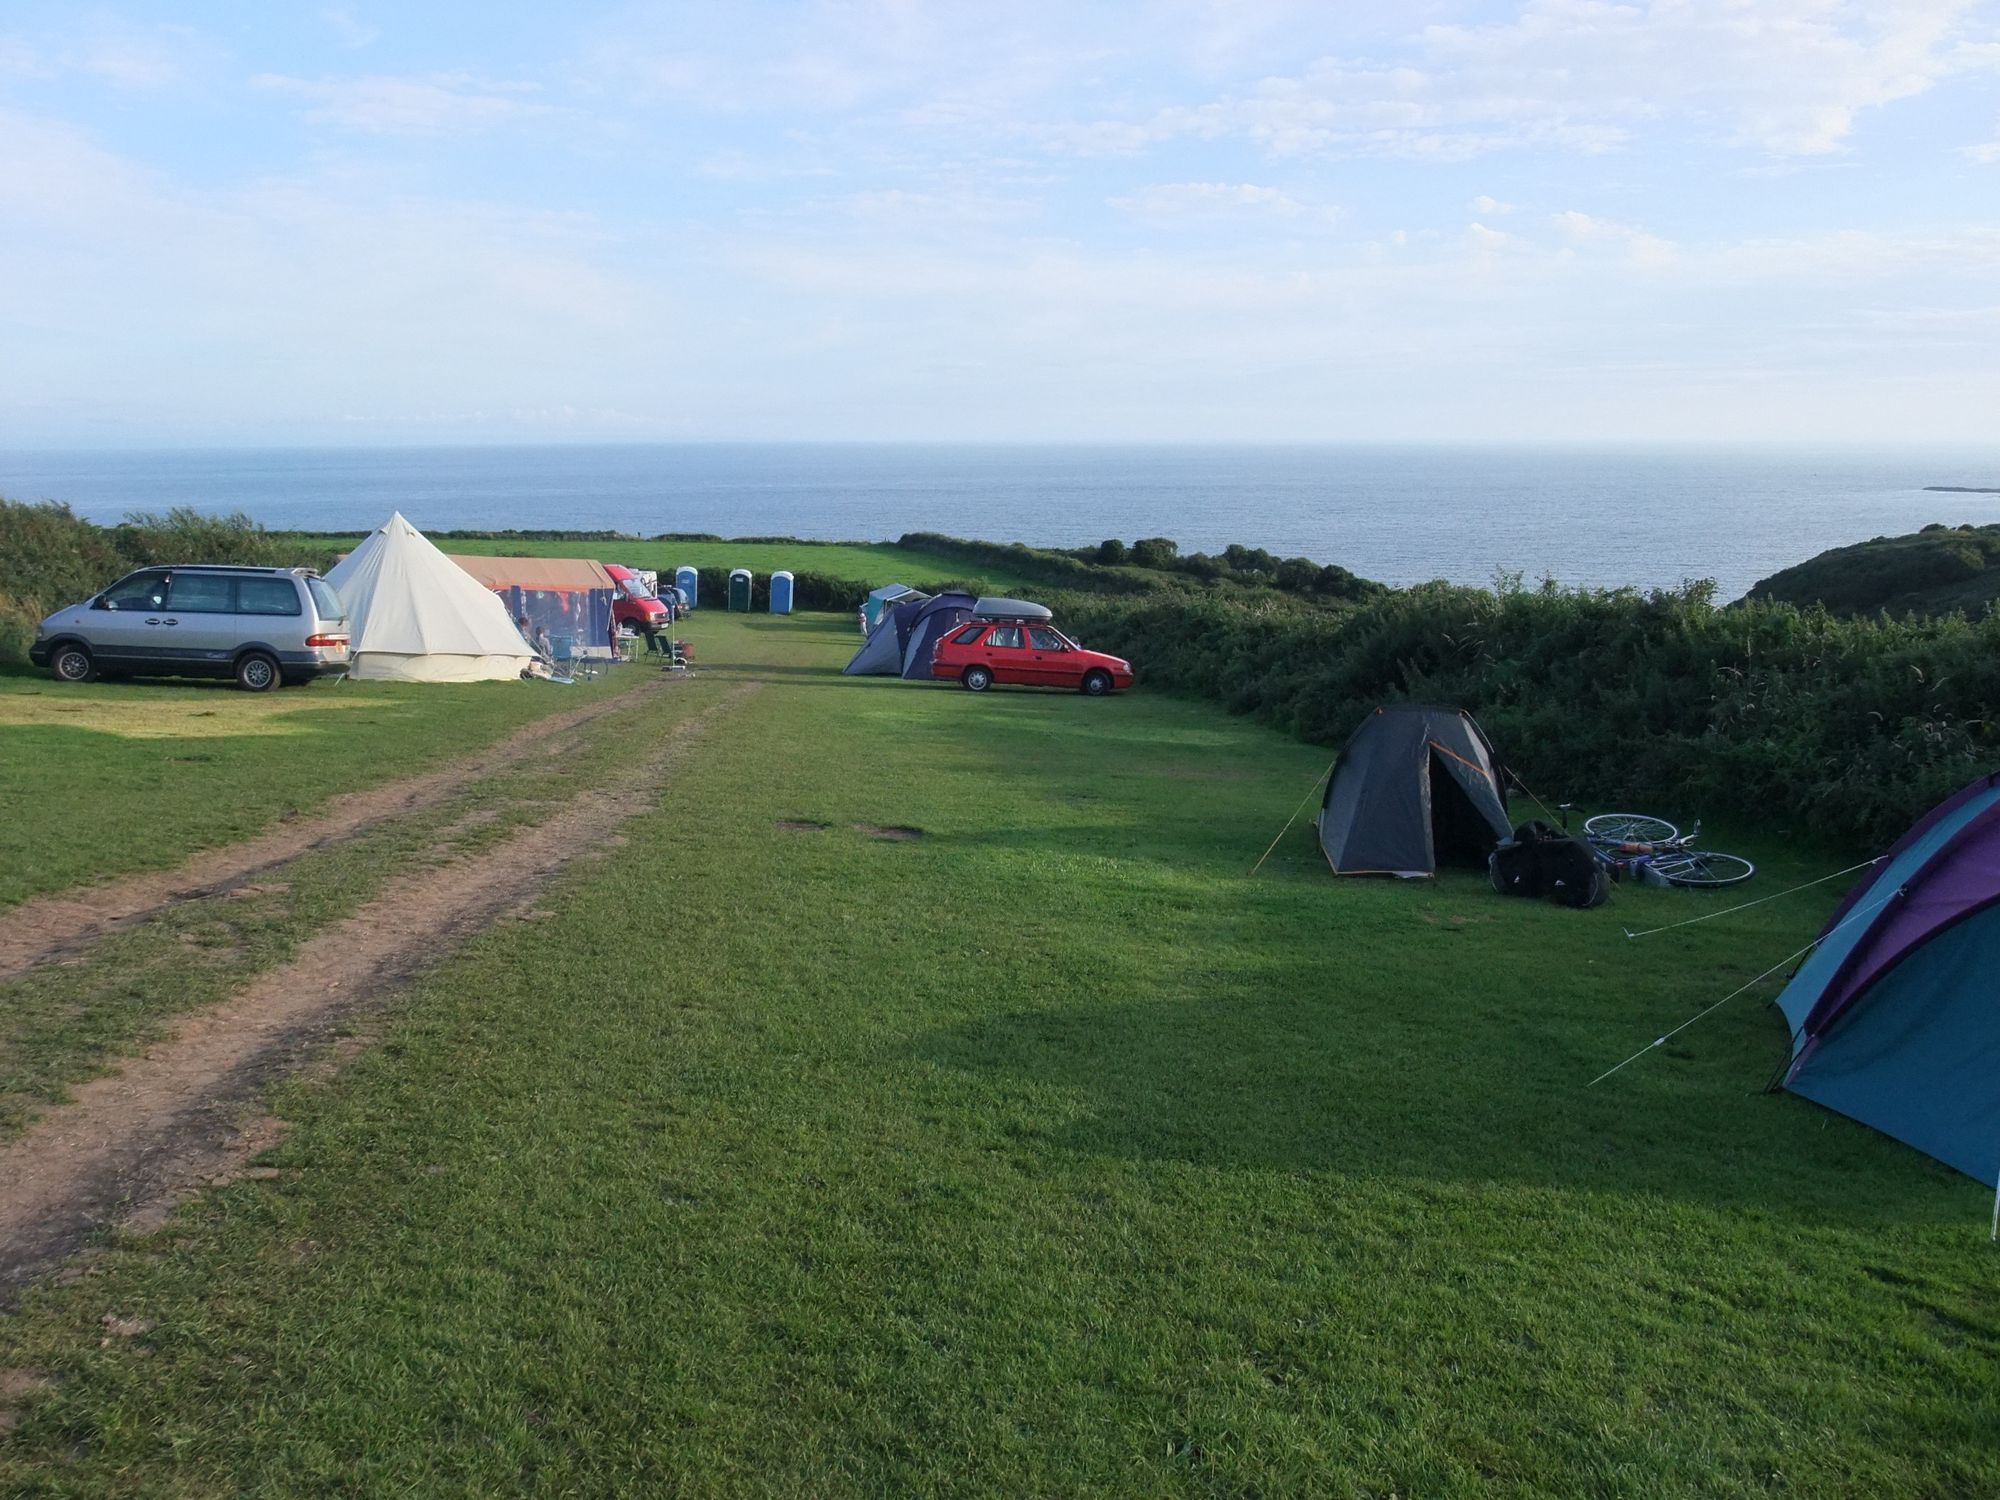 There's been a campsite in this field on the Gower Peninsula for 60 years, and there are no prizes for guessing why.